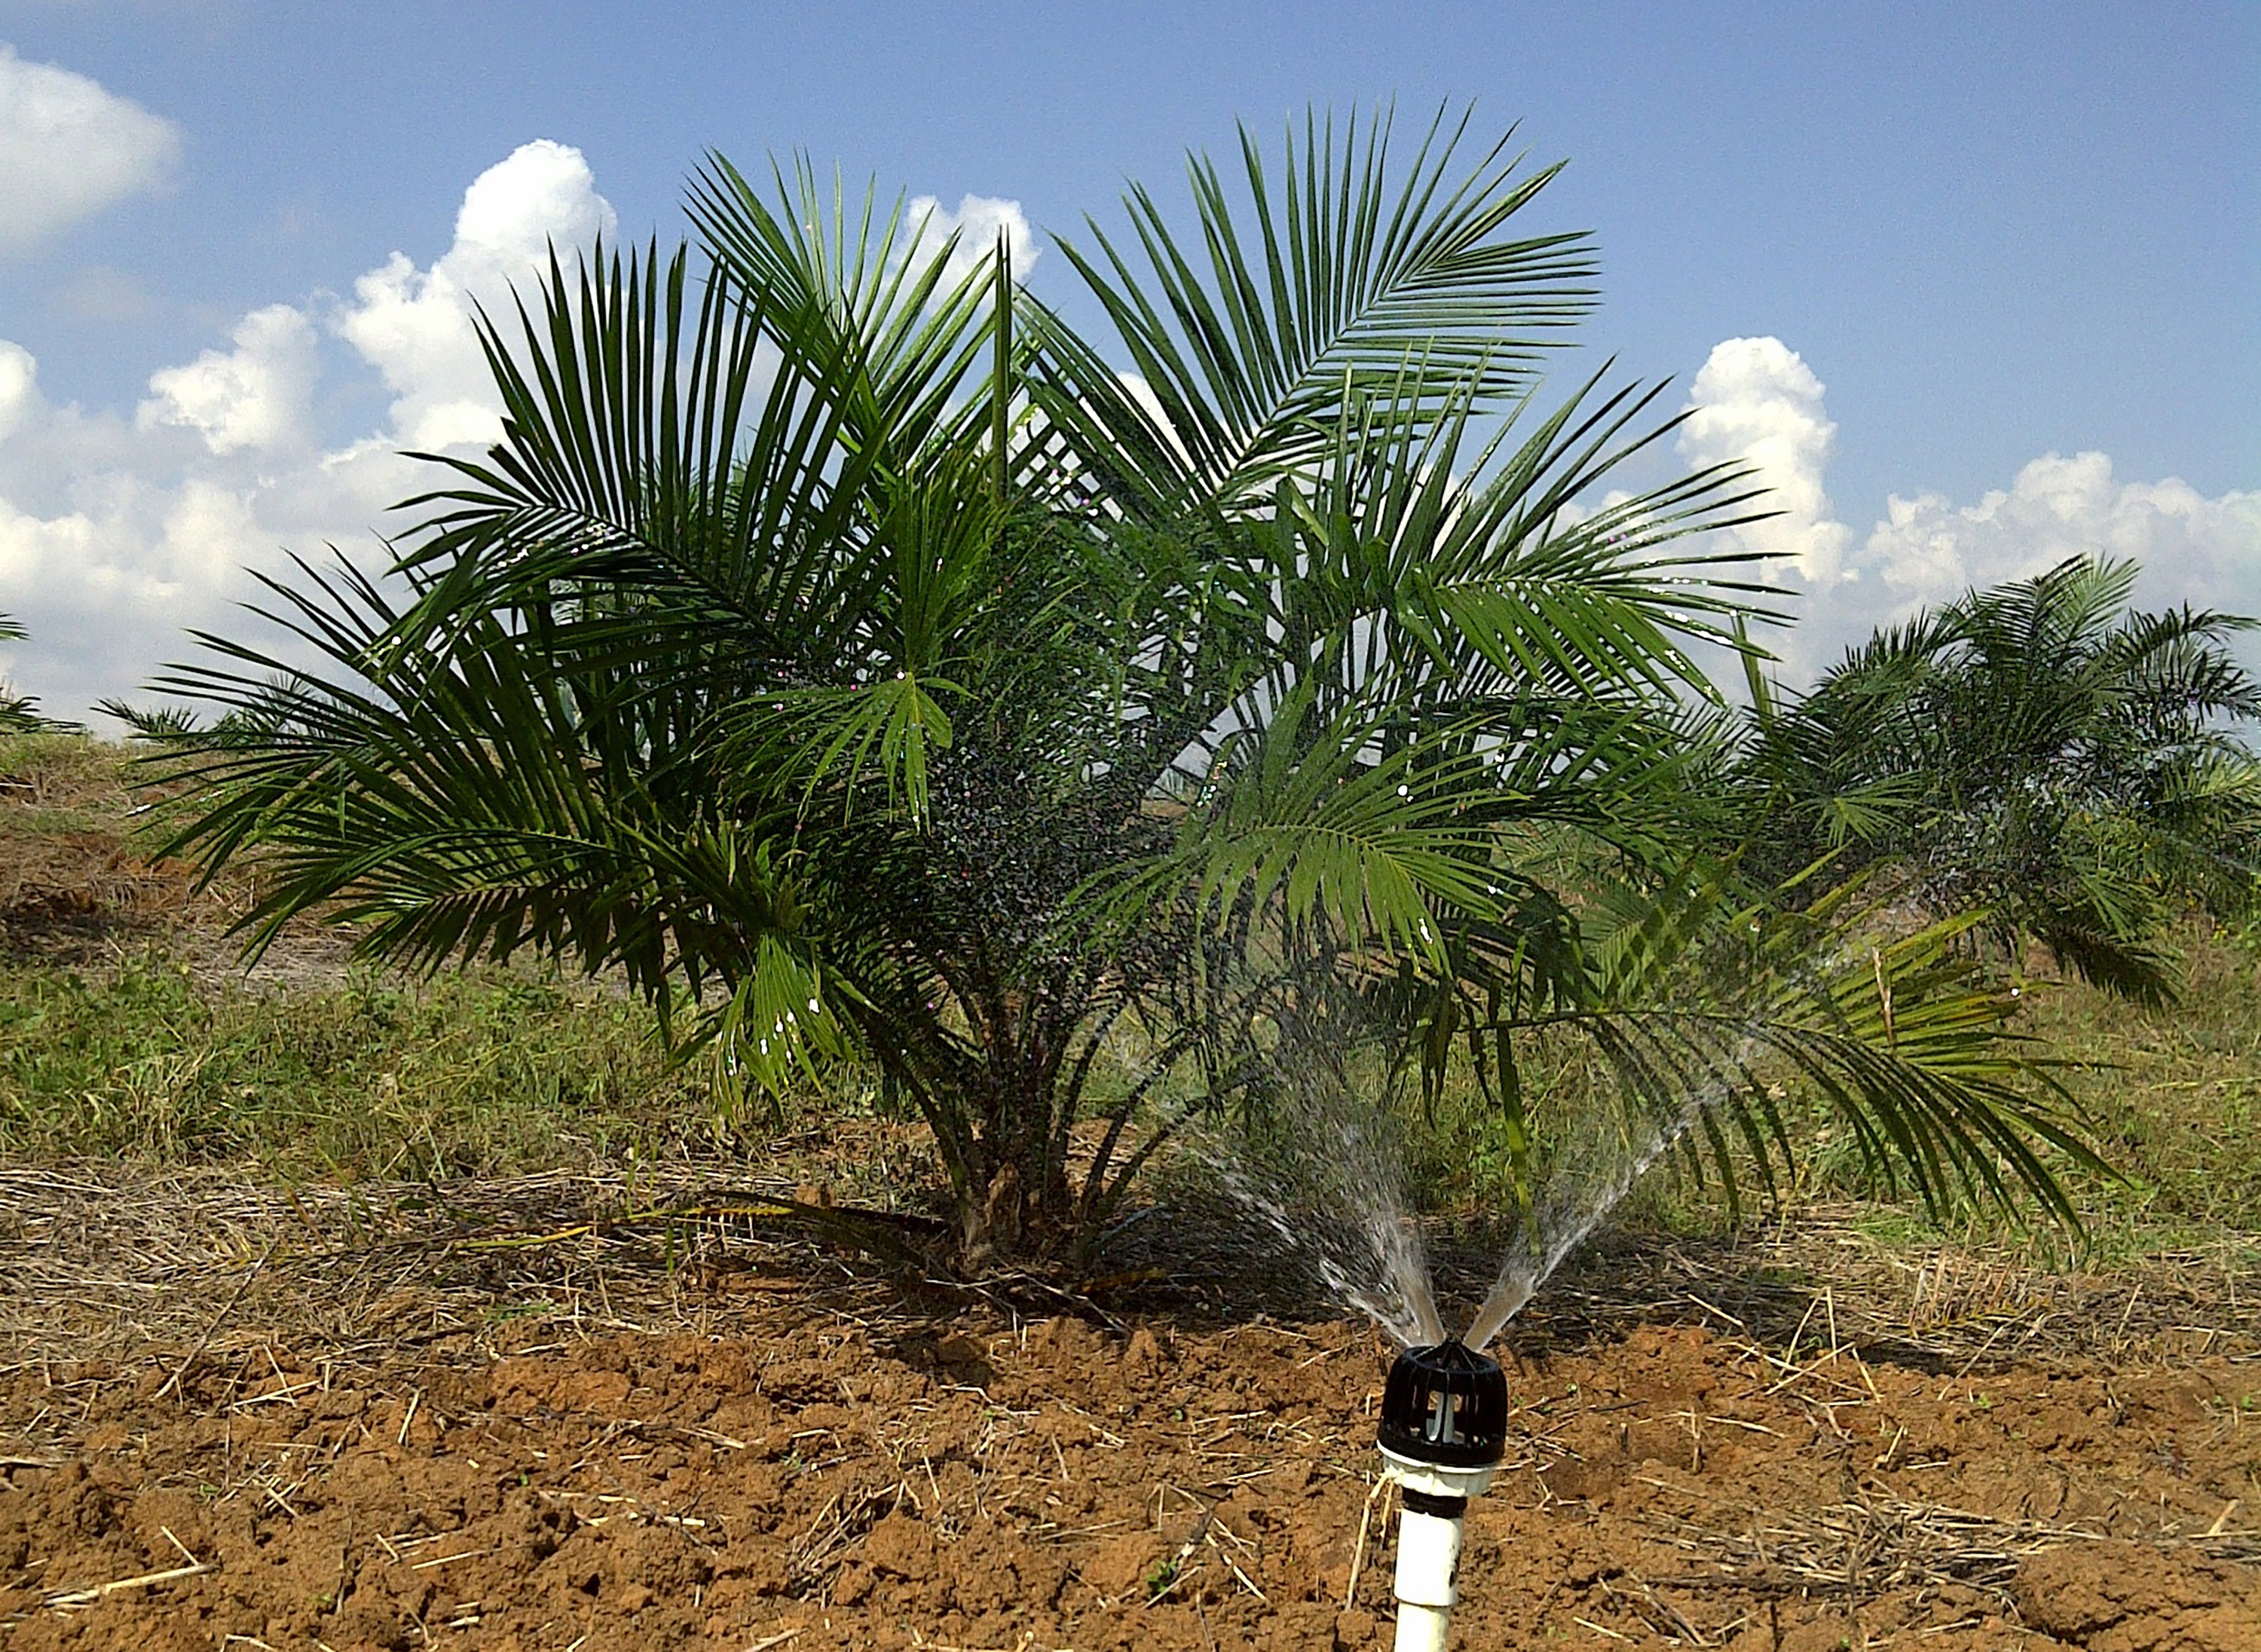 Smooth Drive - Oil Palm